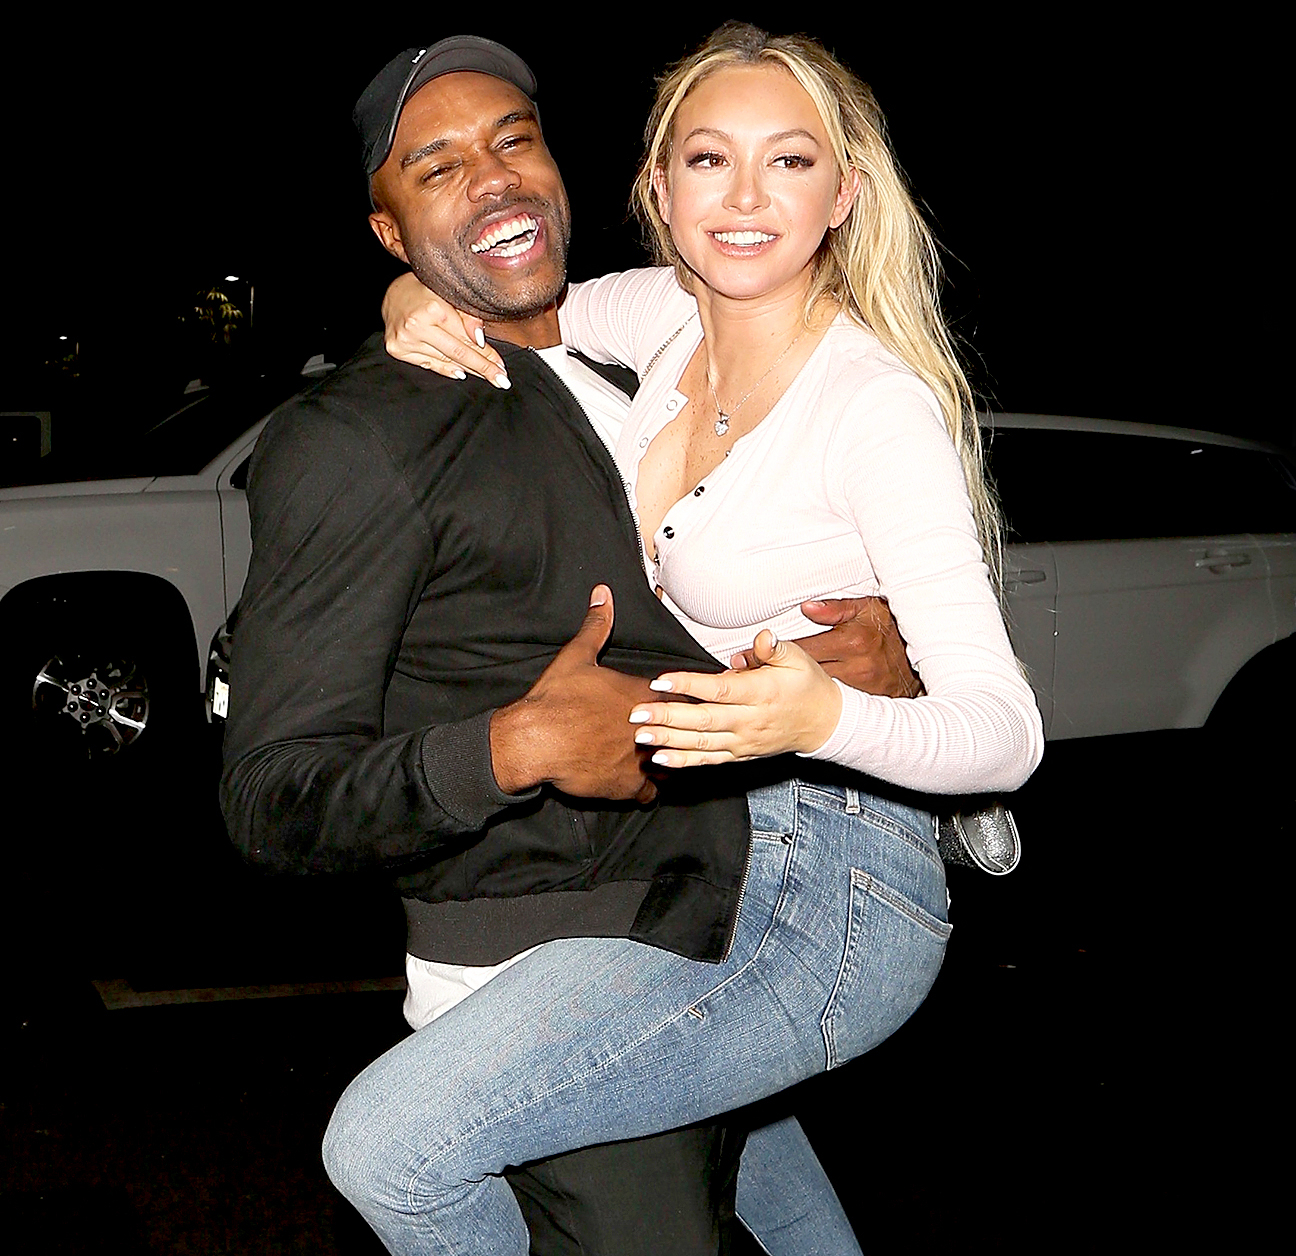 DeMario Jackson and Corinne Olympios Are 'Just Friends' Despite That Kiss